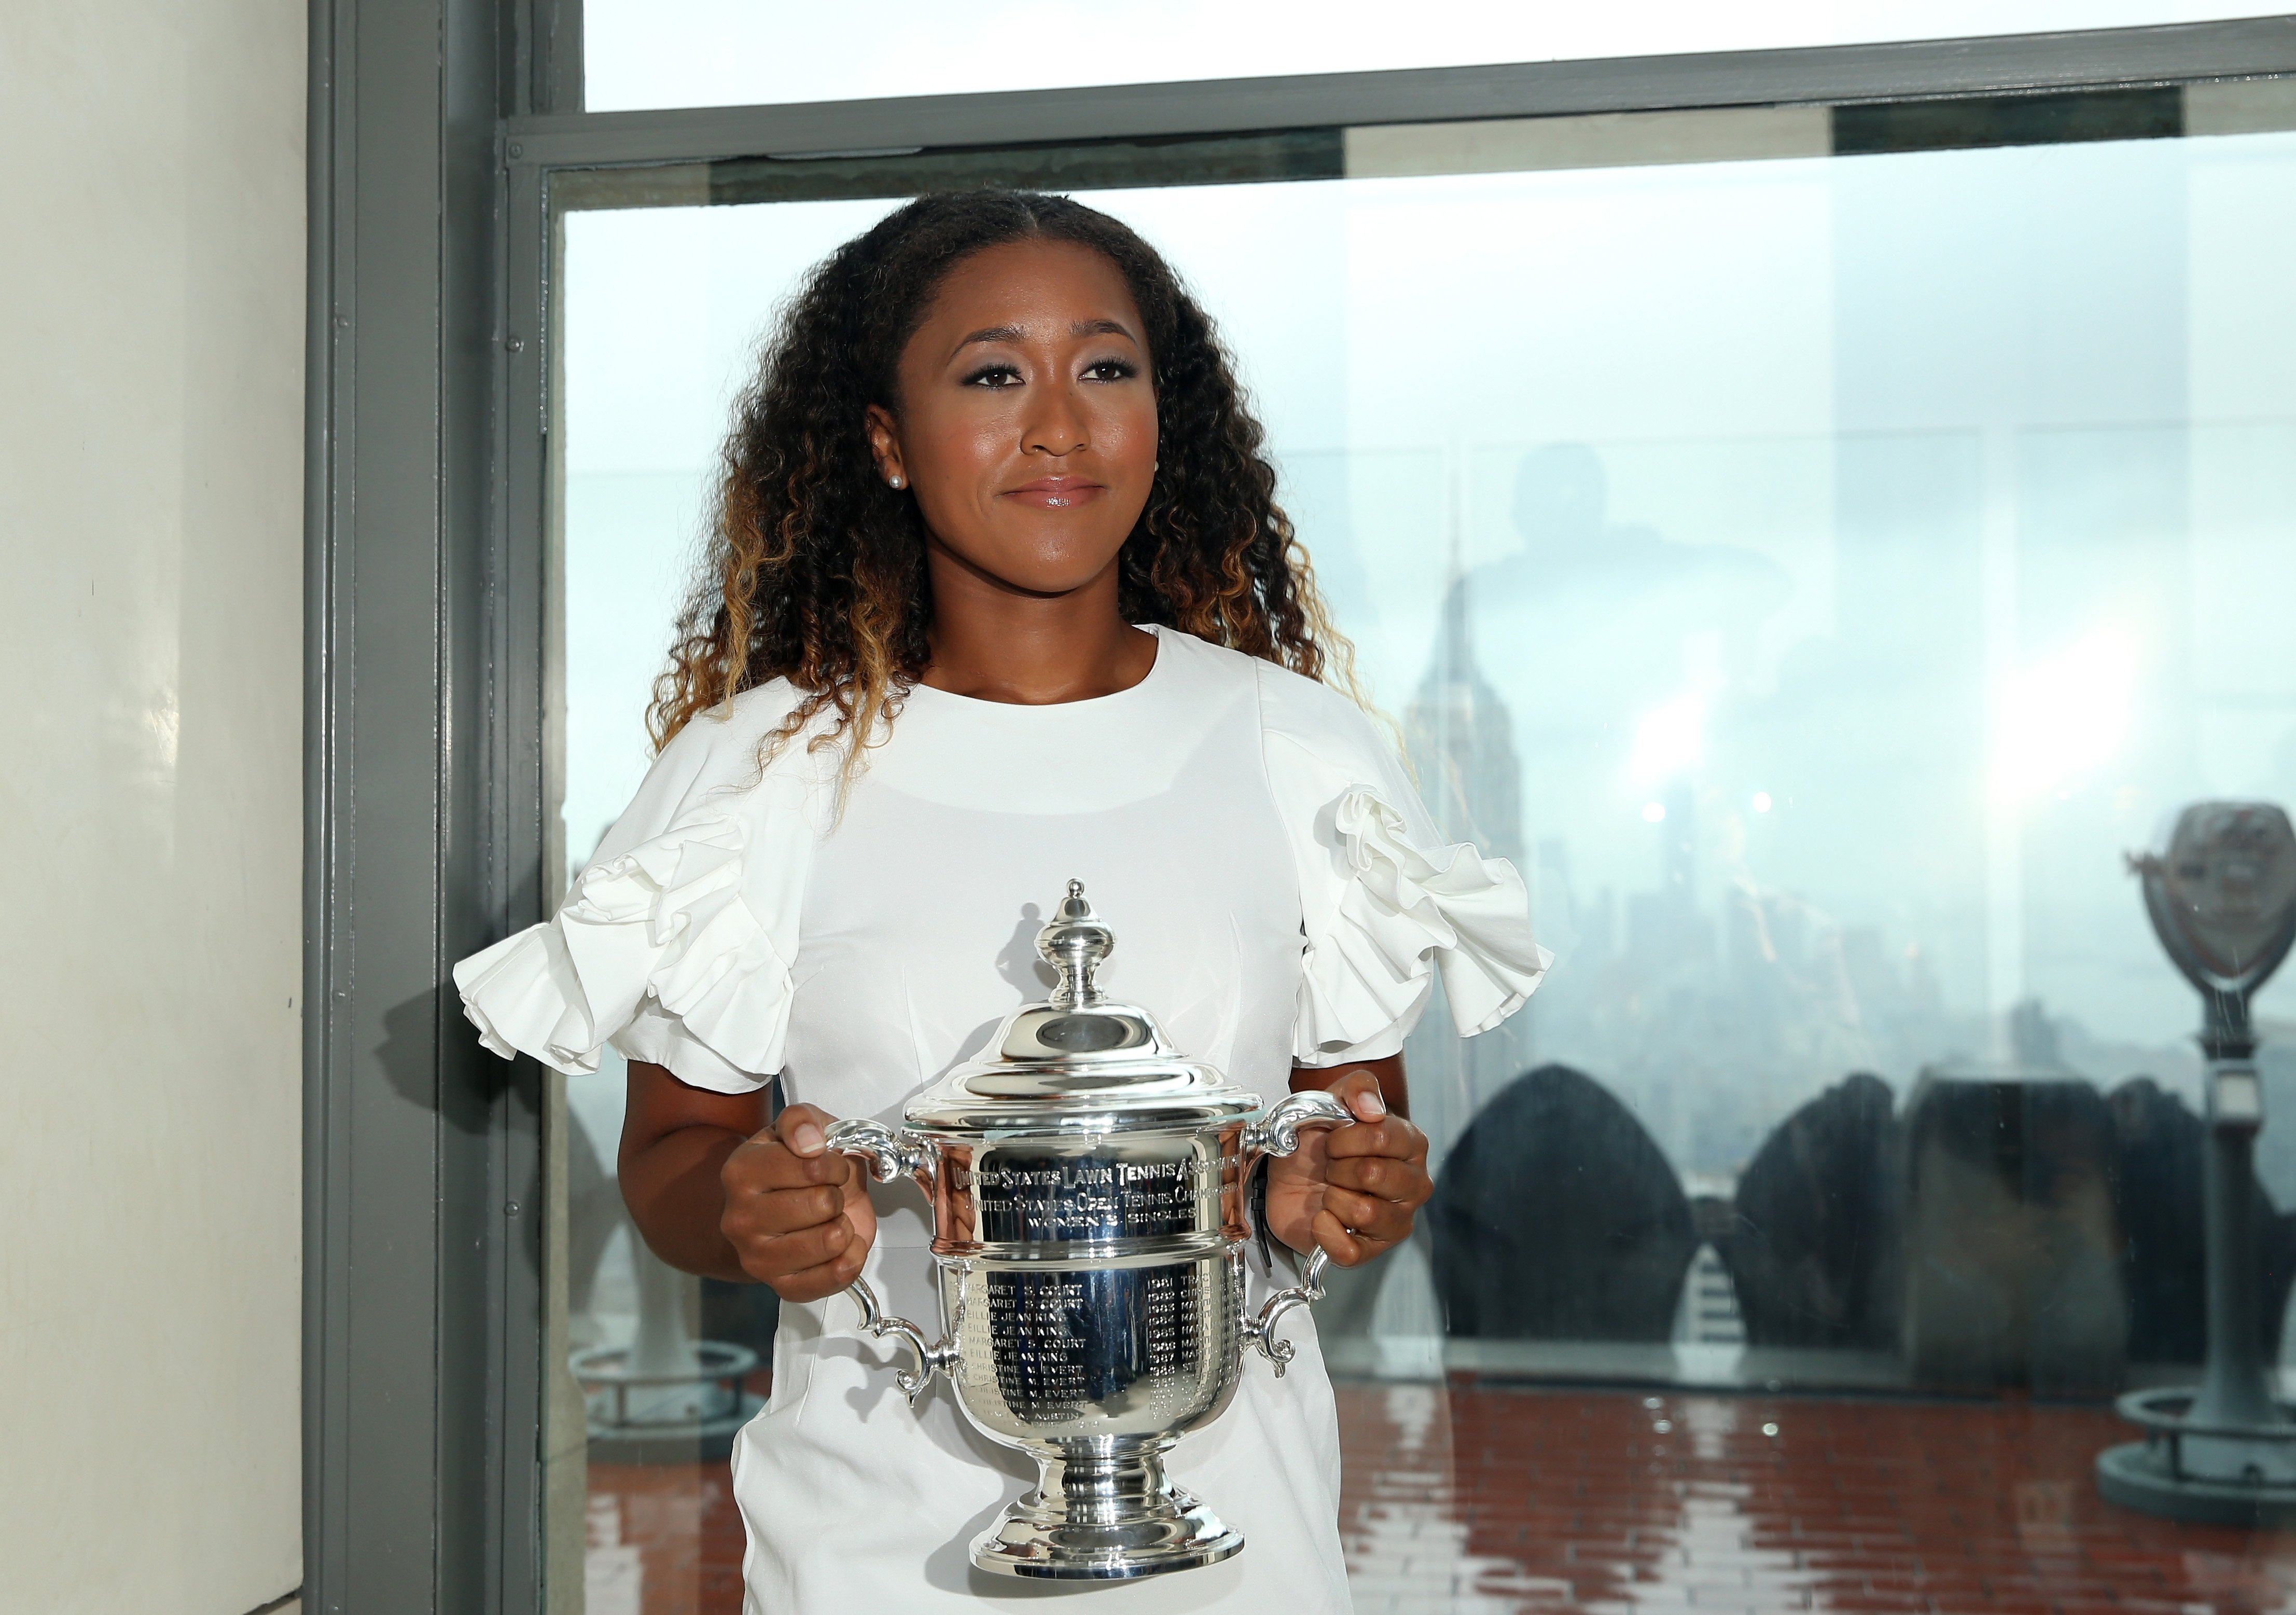 Naomi Osaka of Japan poses with her trophy on Sept. 9, 2018 after winning at the U.S. Open.  Photo: Getty Images